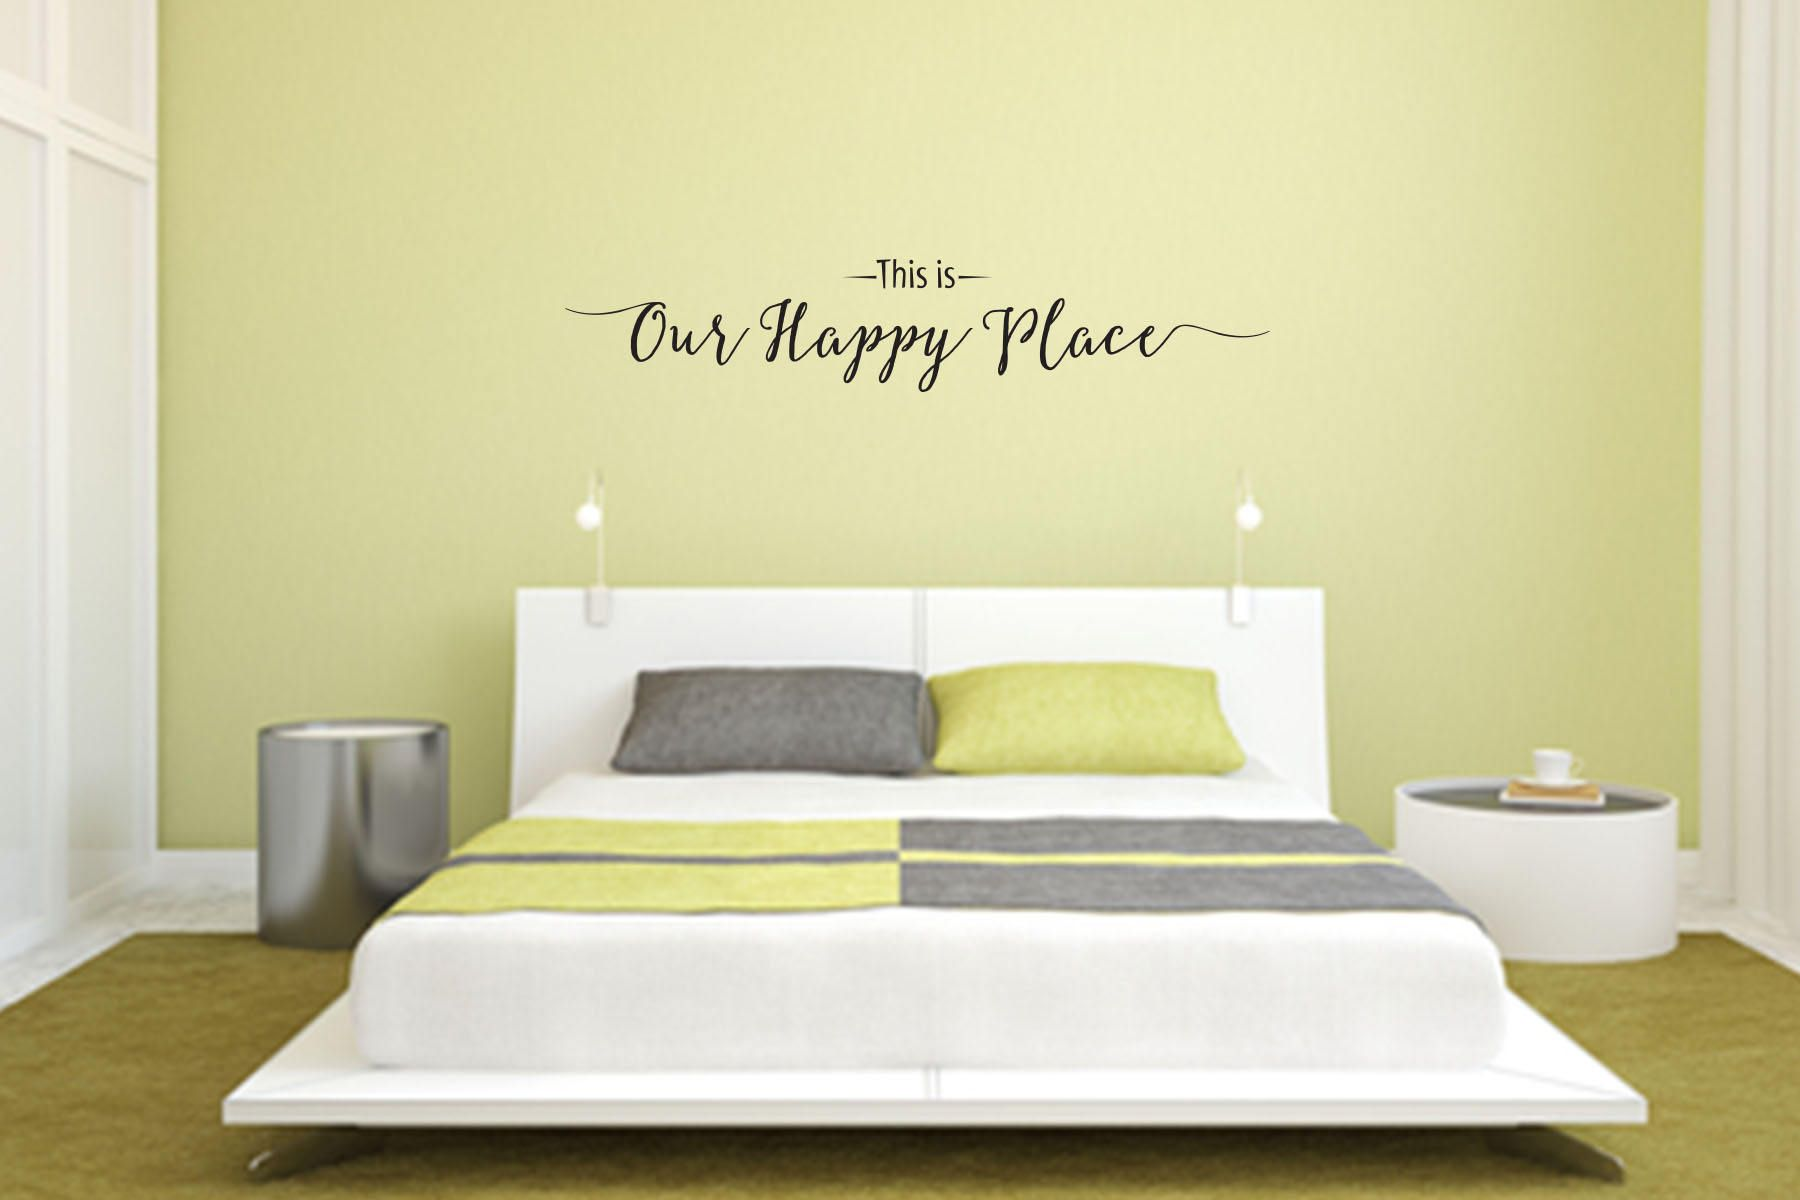 This is Our Happy Place Wall Decal - Great For Home, Bedroom Or ...